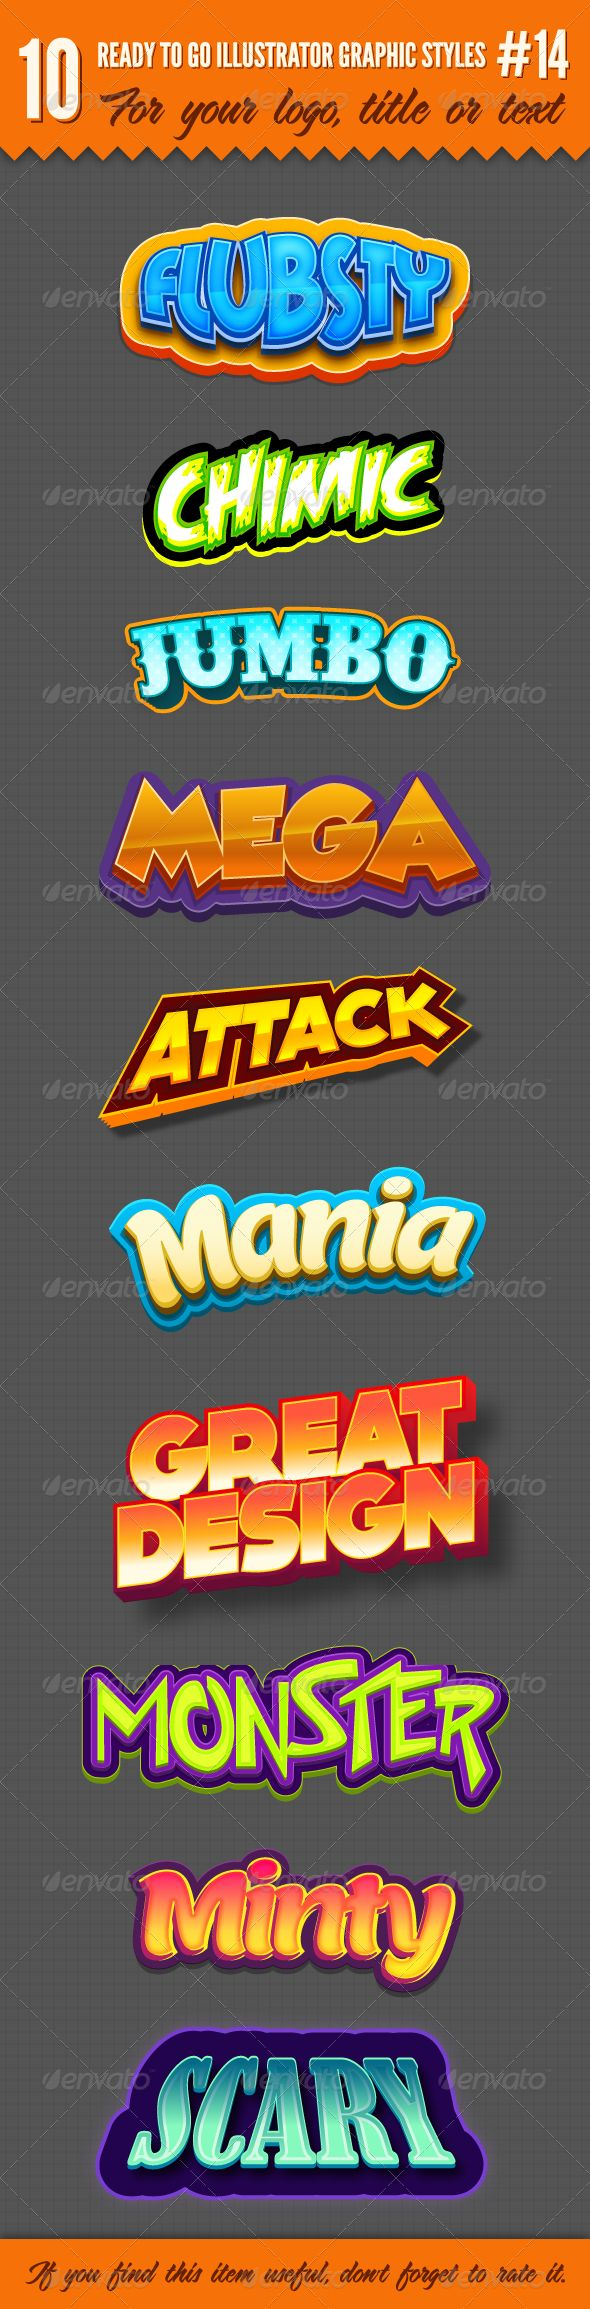 10 Logo Graphic Styles #14 | GraphicRiver